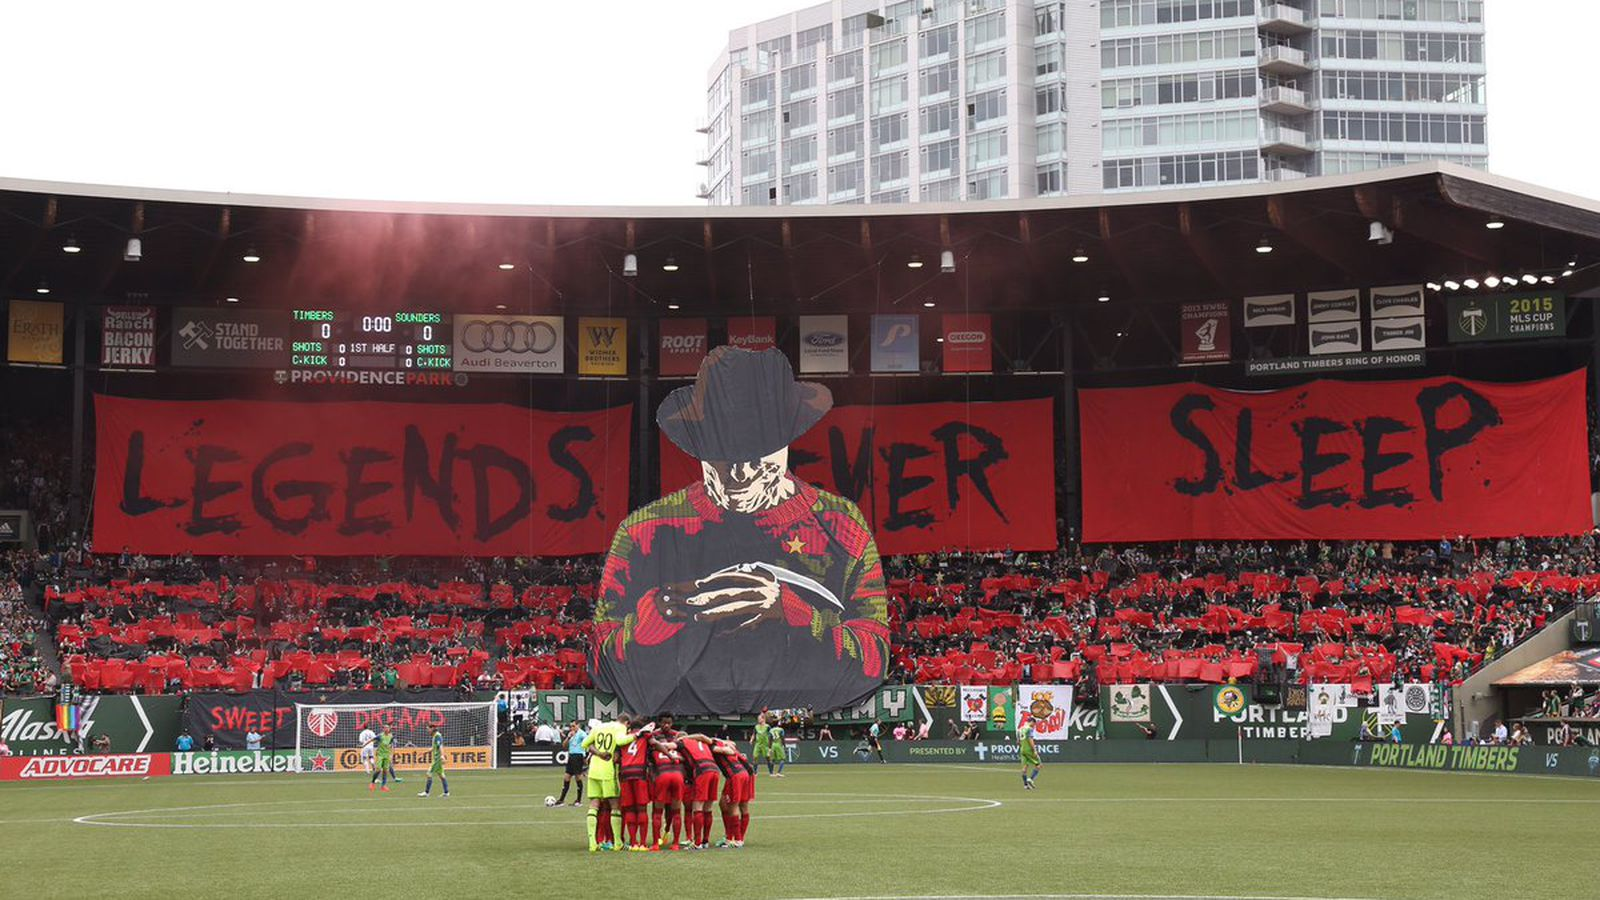 The Portland Timbers' Freddy Krueger tifo will haunt your ...